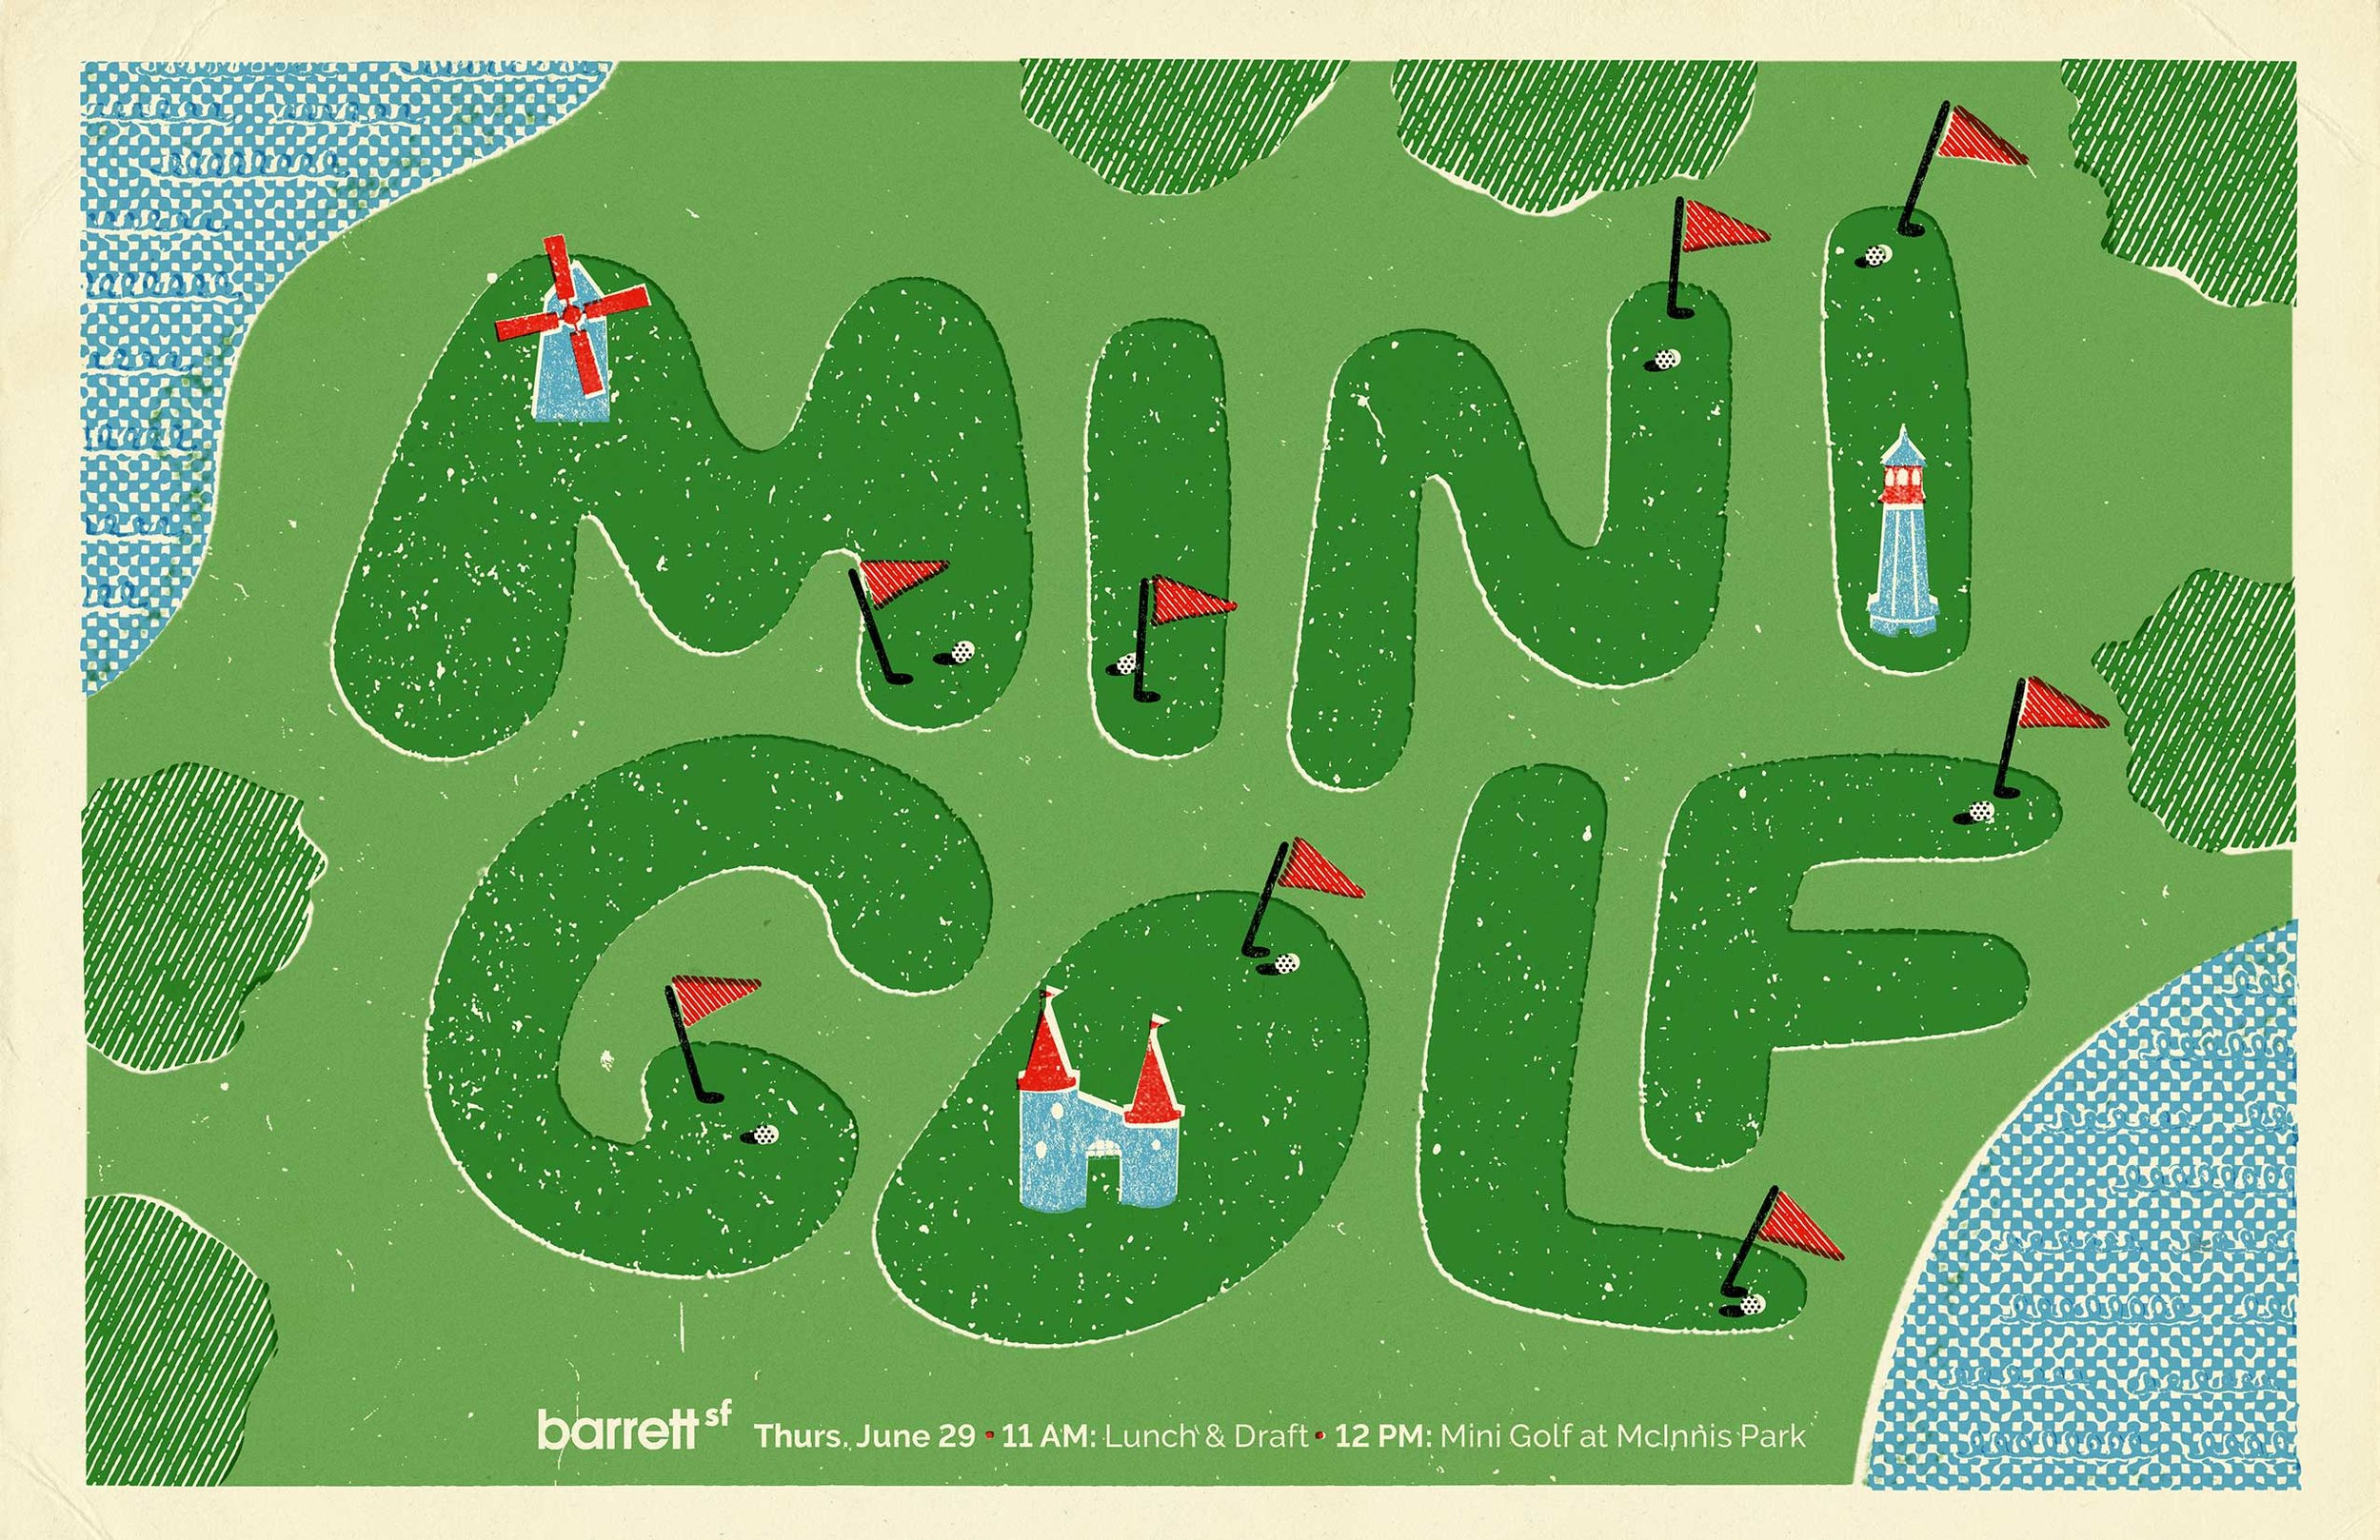 barrettSF asked me to create a promotional poster for their mini golf tournament.